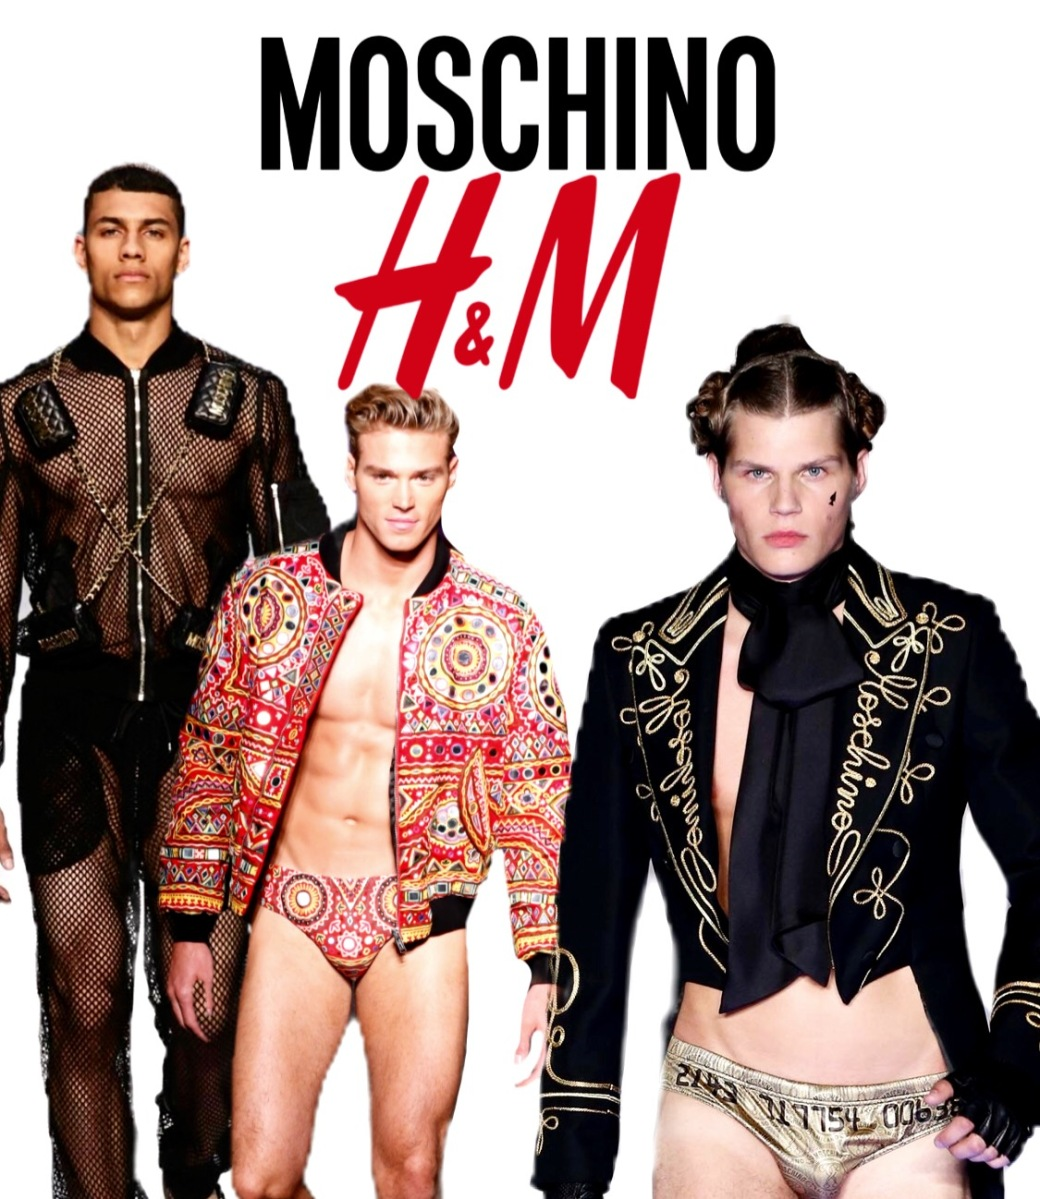 H&M announces the next design collab with Moschino